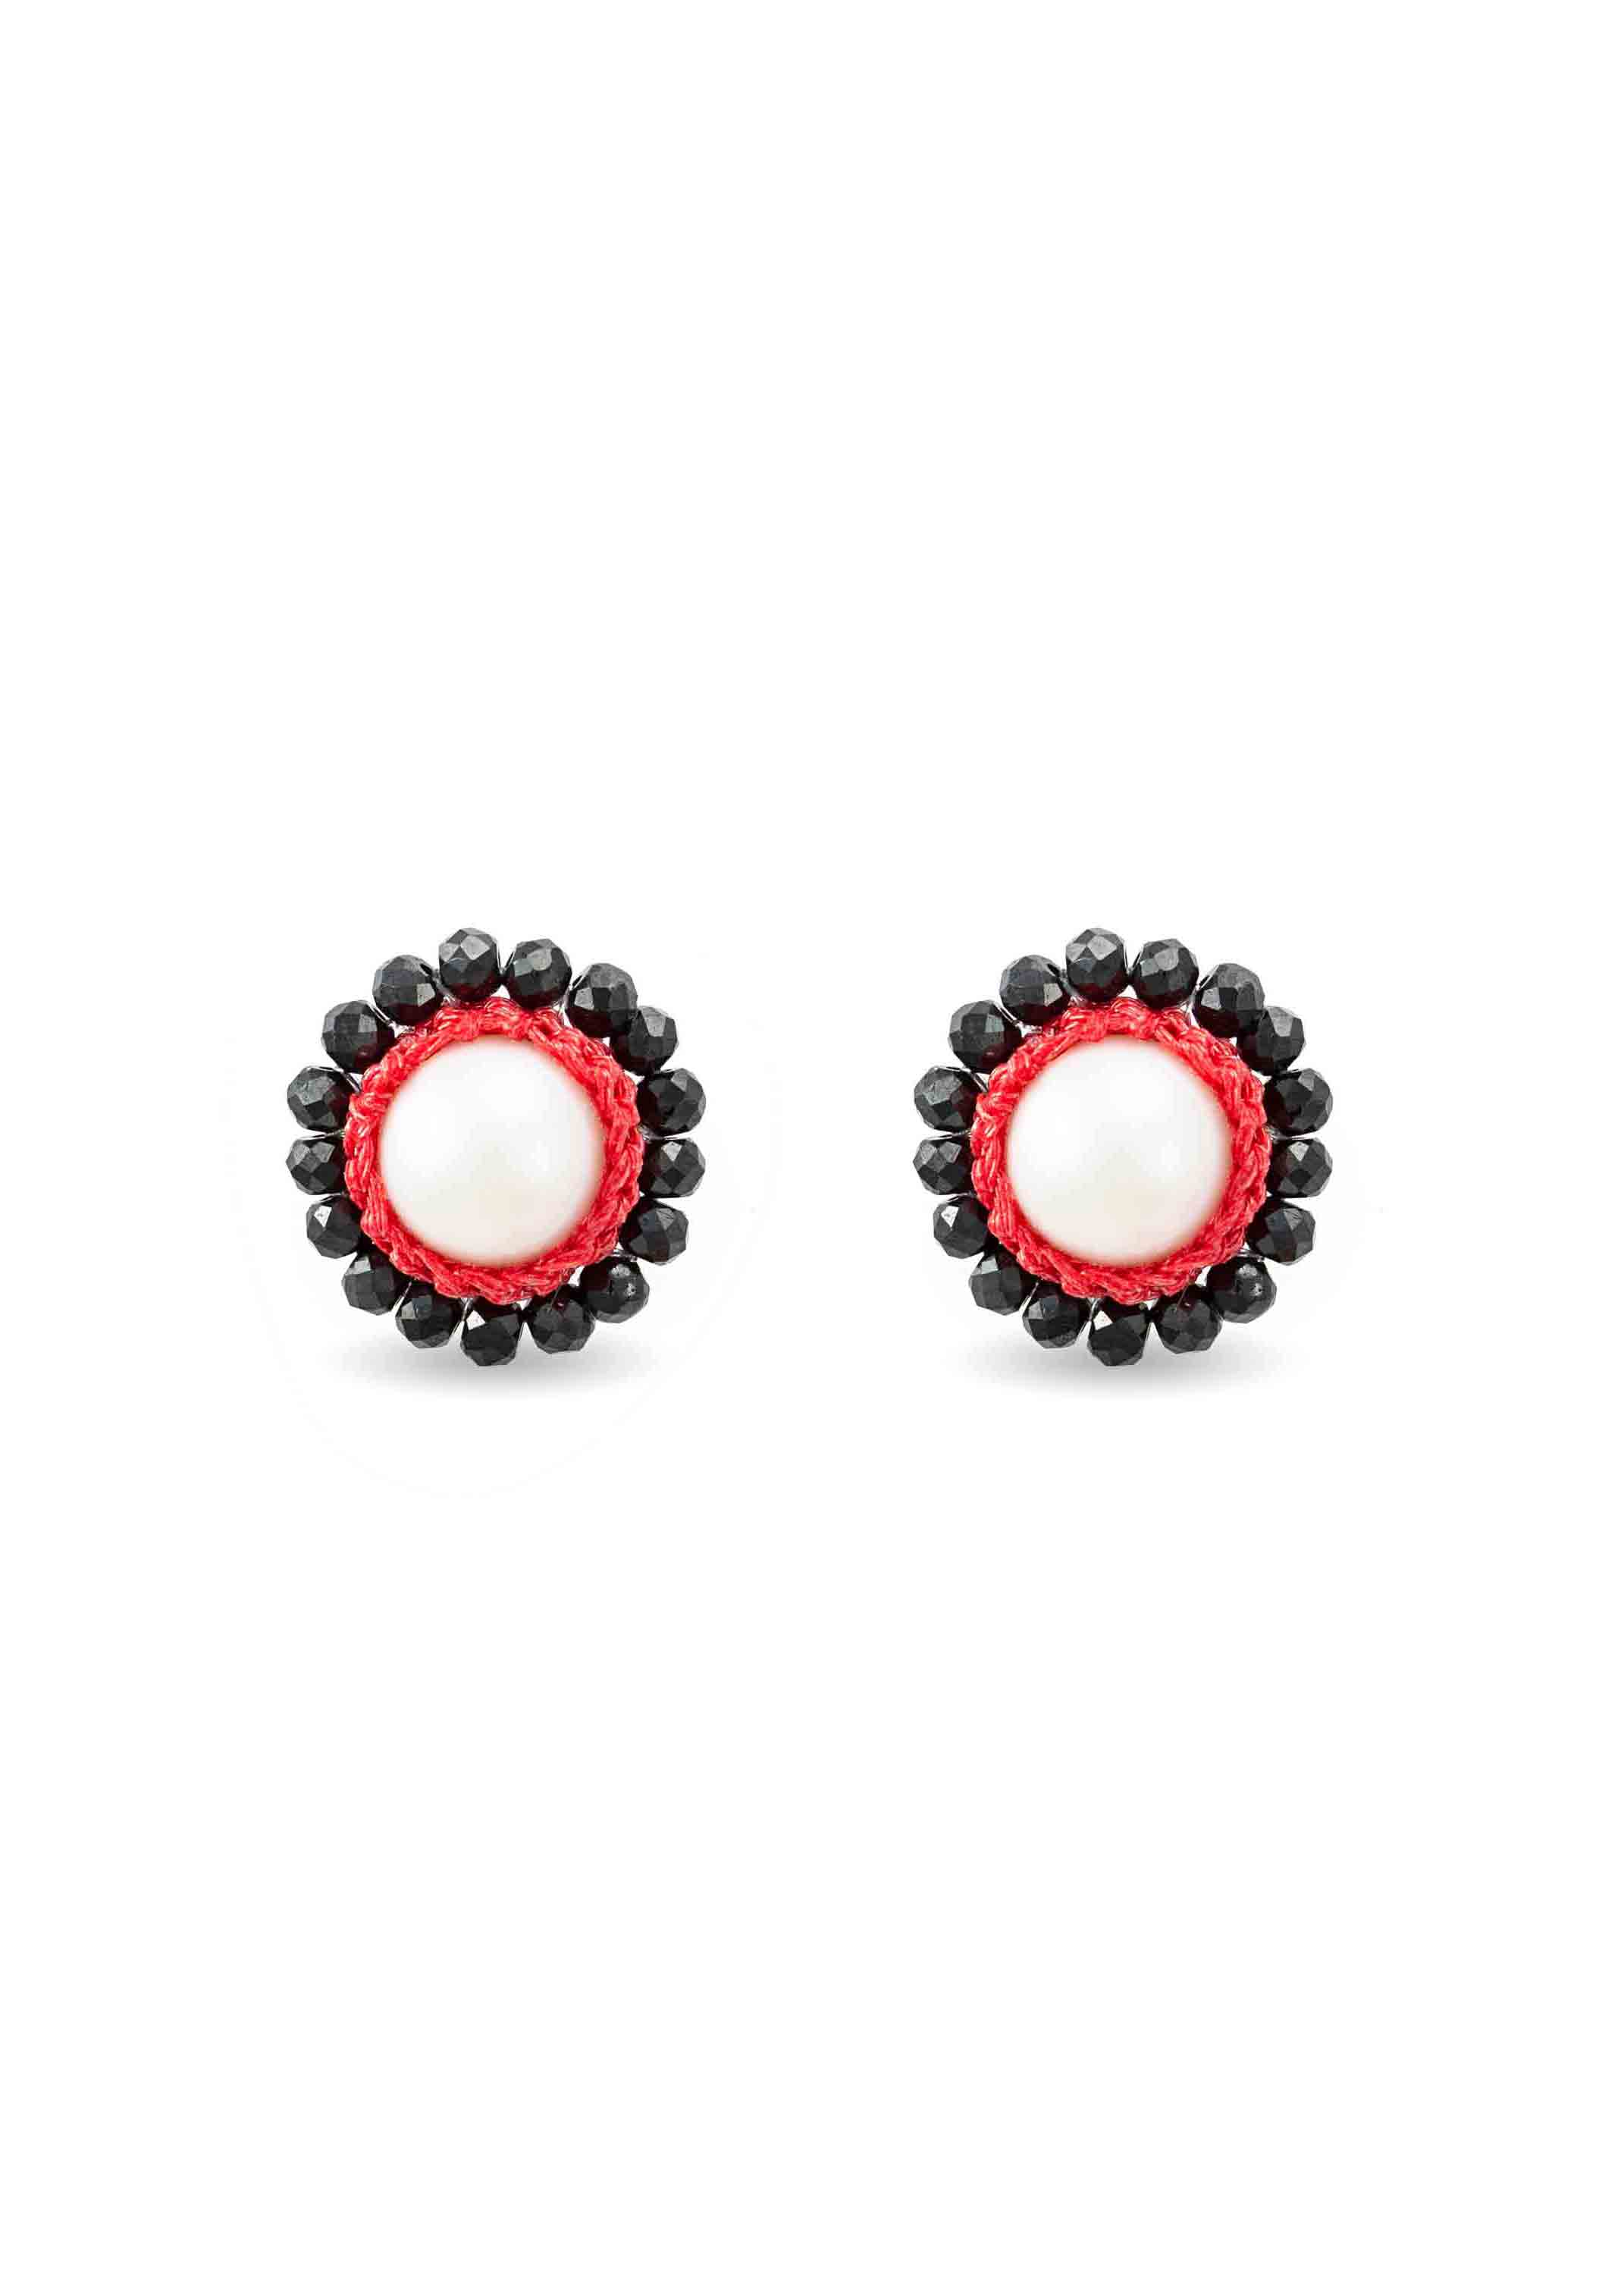 Pierre de protection earrings